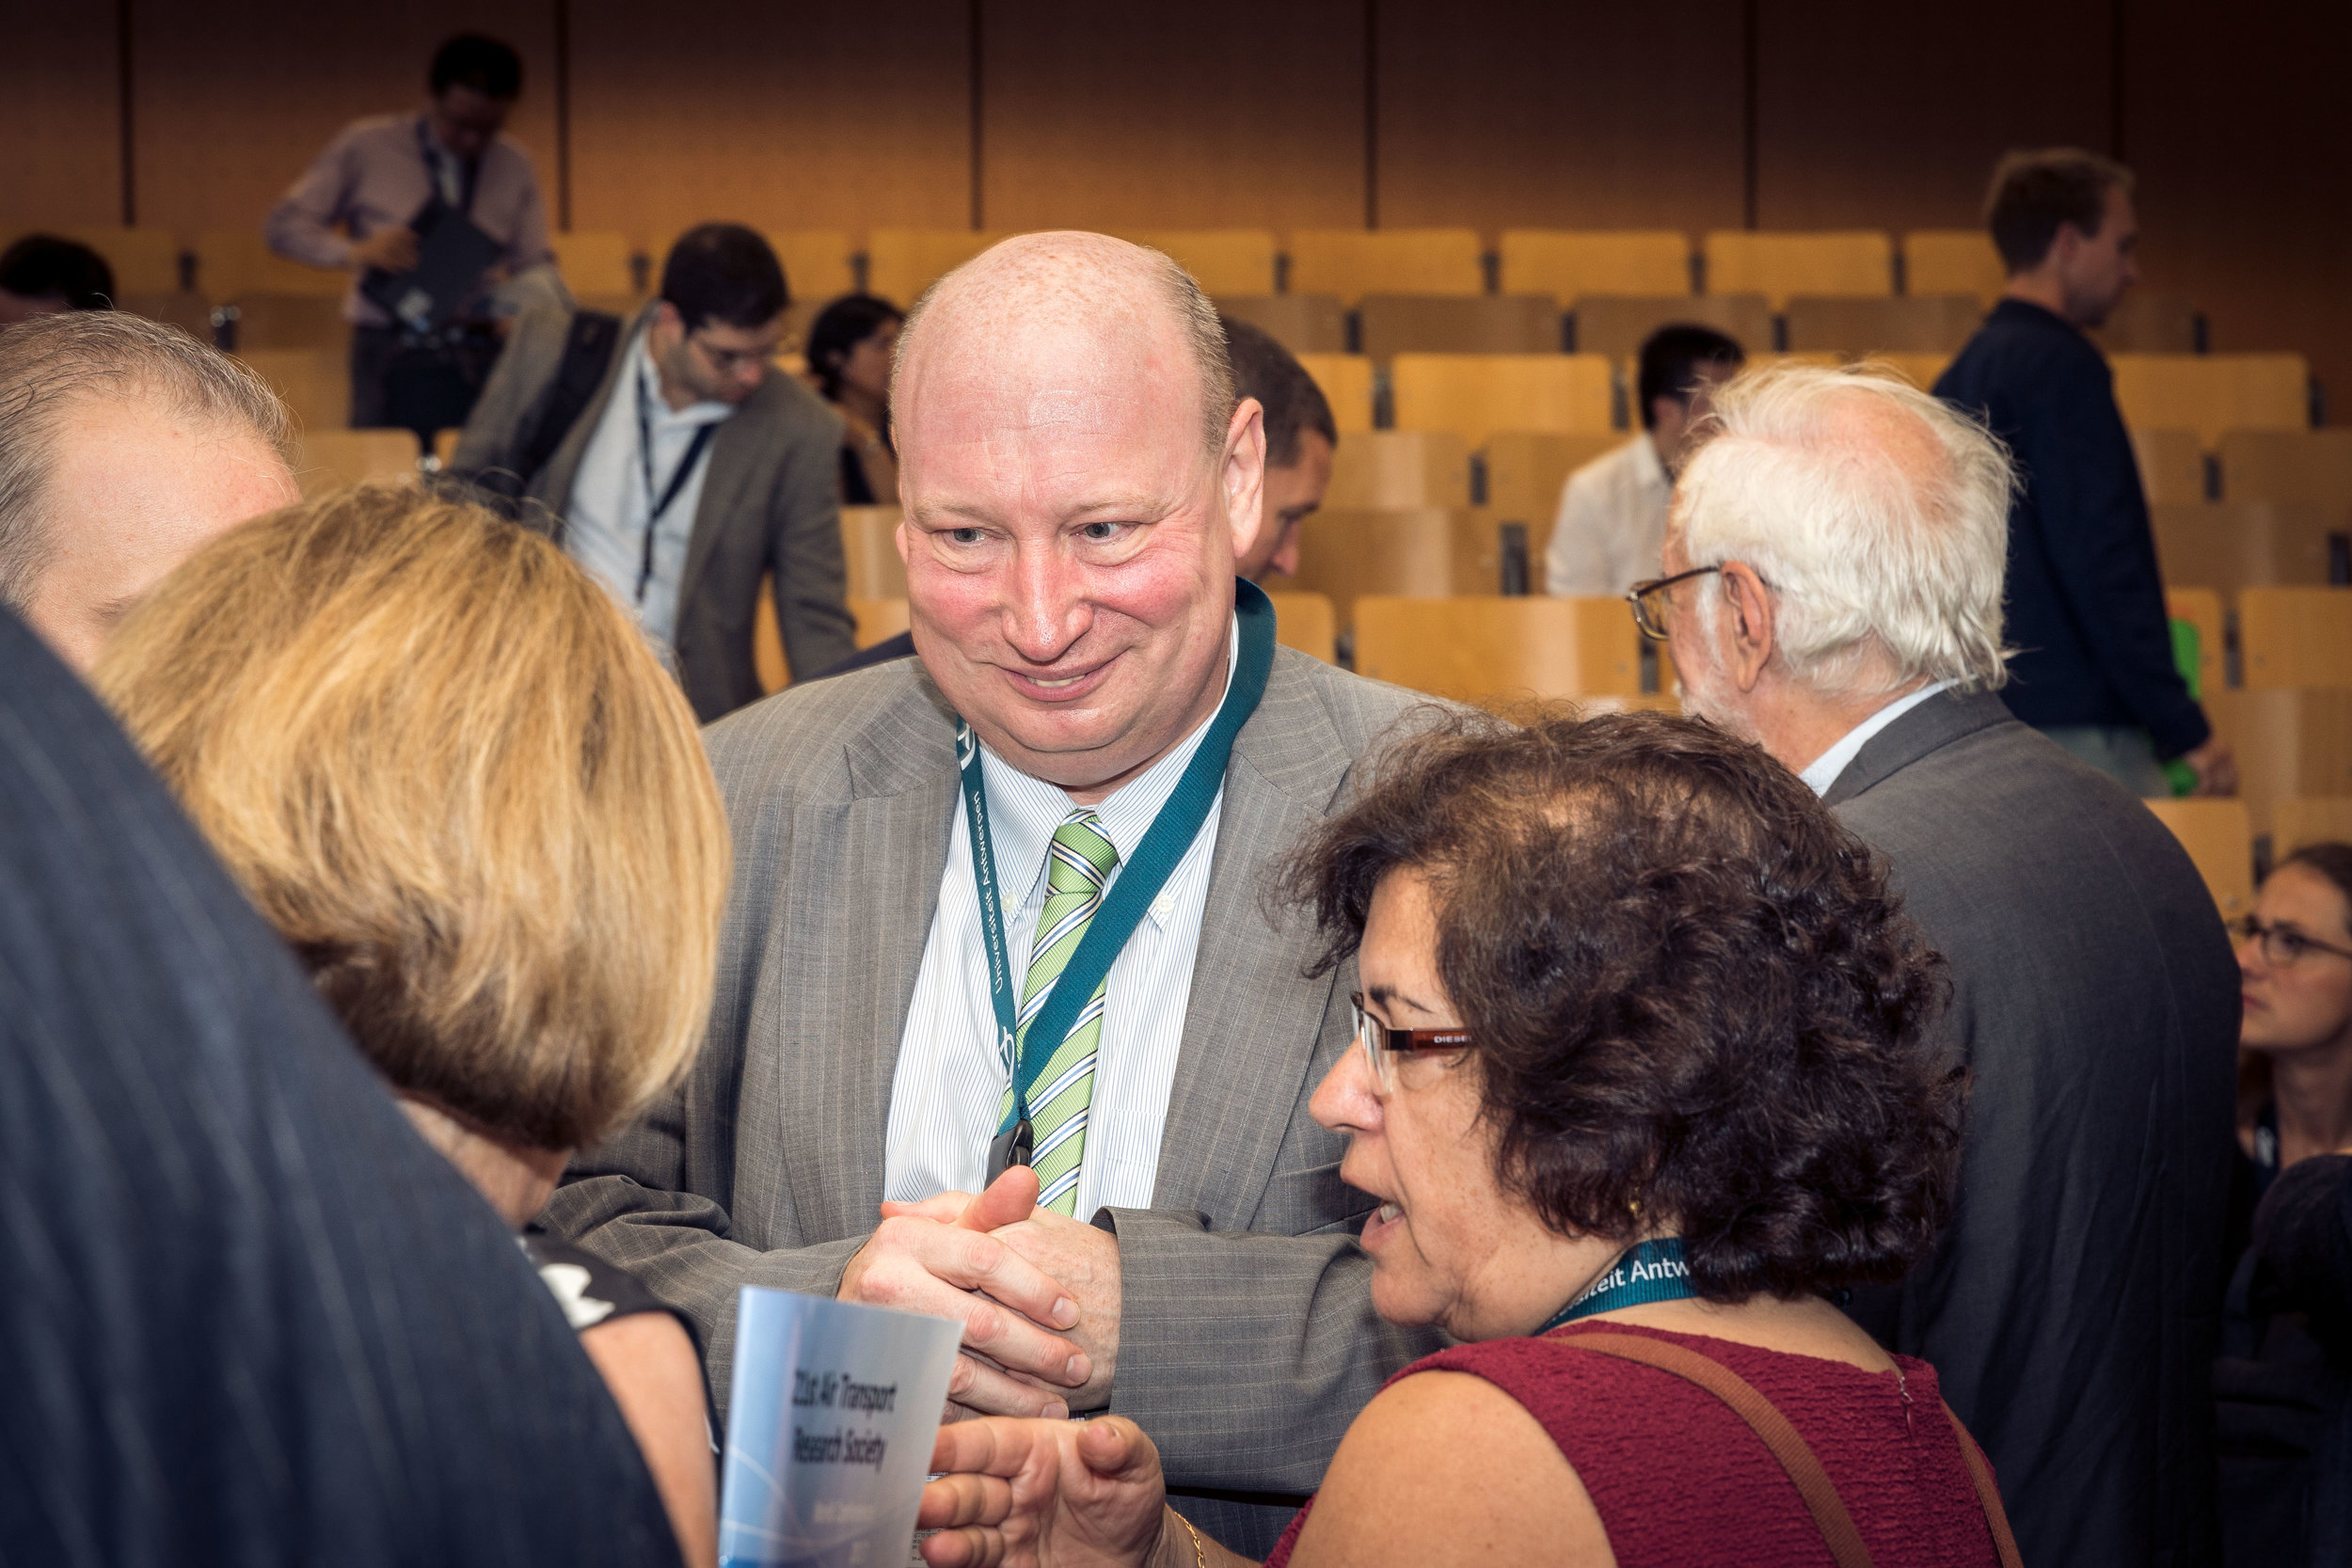 Photo © Alexis Breugelmans, All Rights Reserved.www.alexisbreugelmans.comPlenary Sessions ATRS 2017 Antwerp